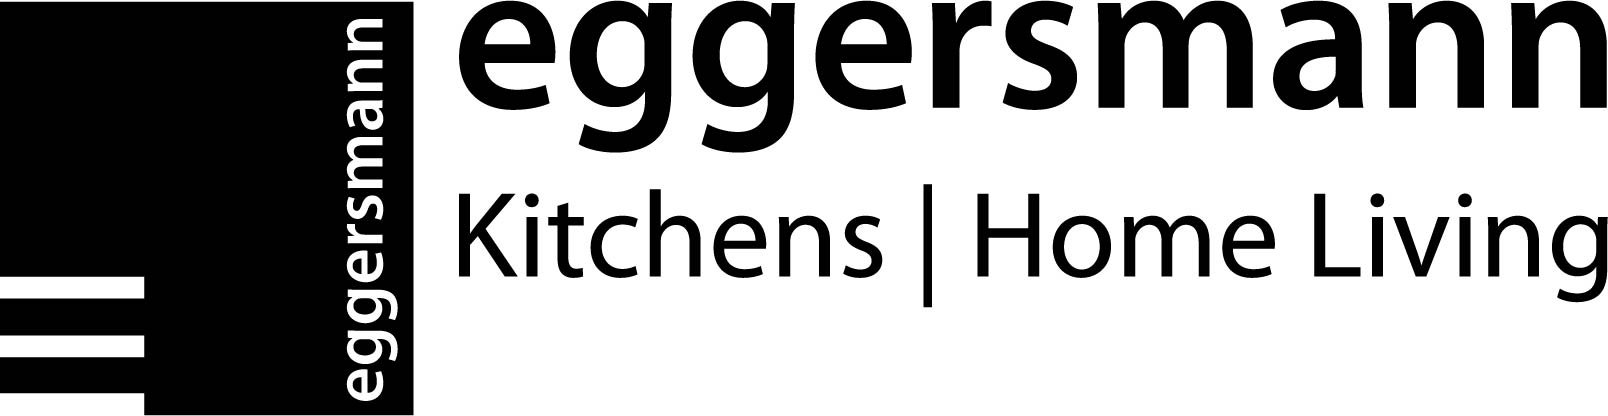 Tour of Homes - Eggersmann logo